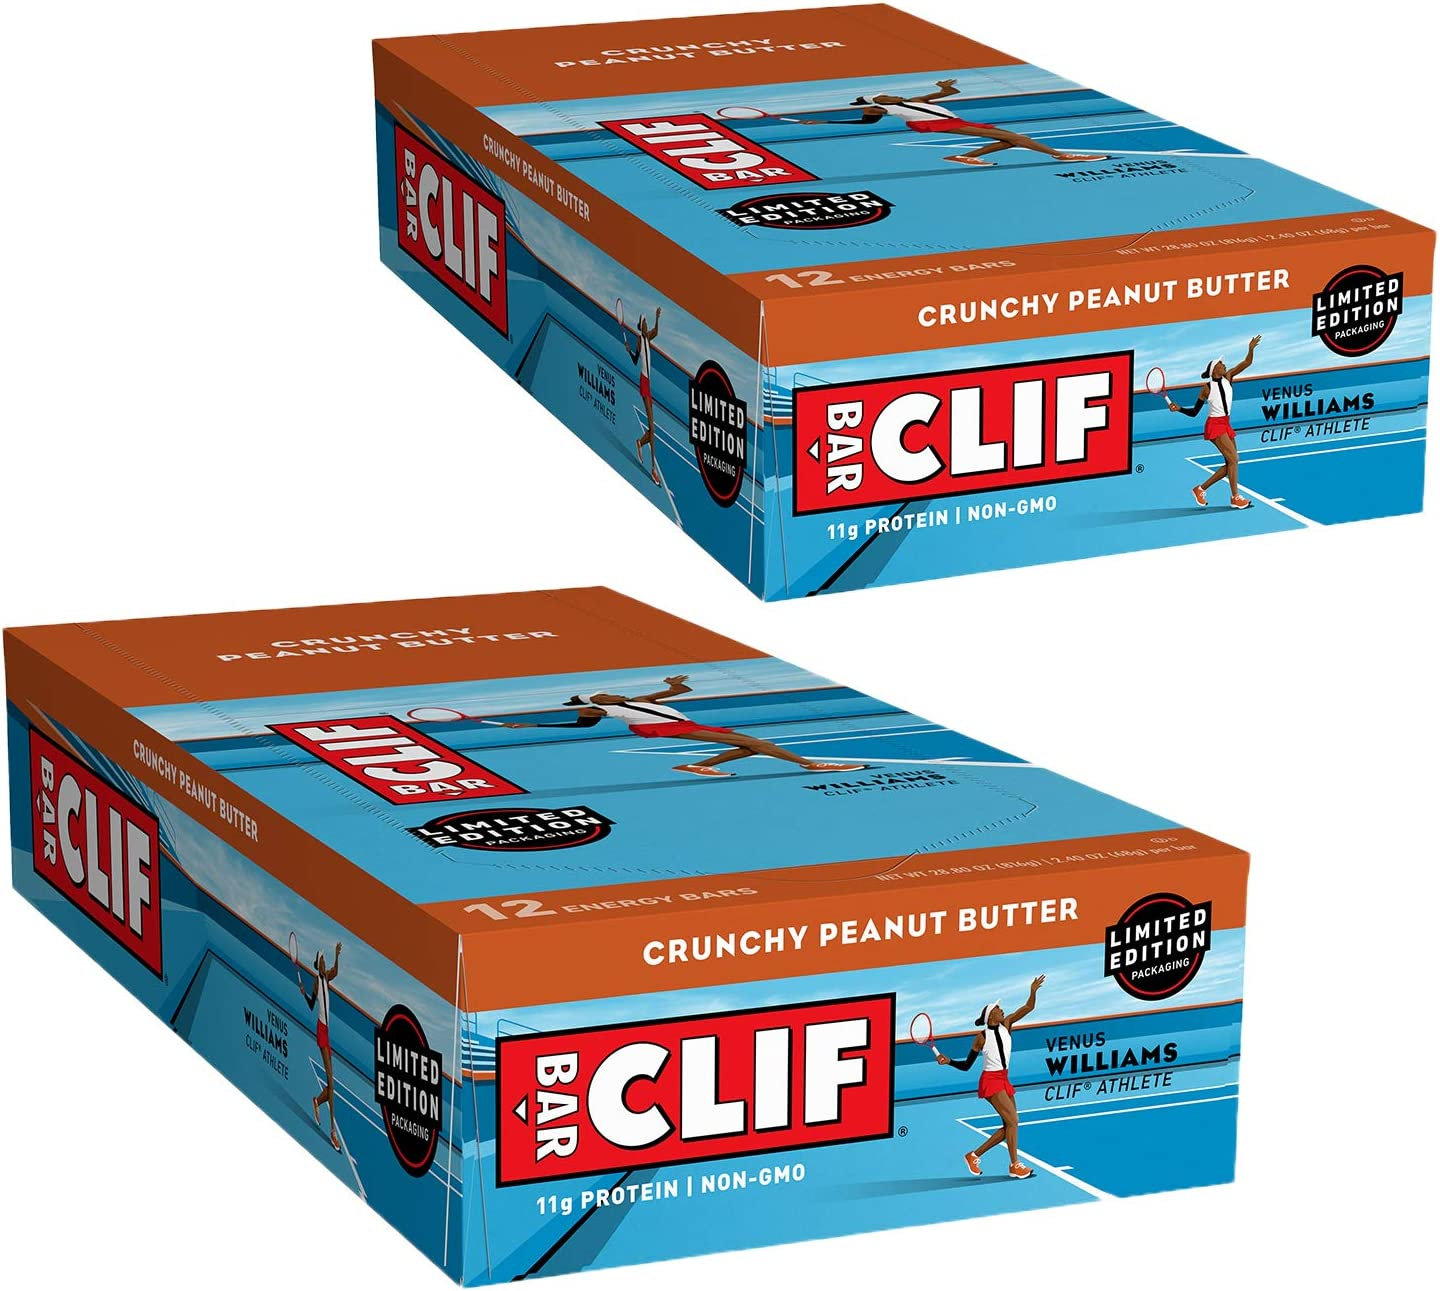 CLIF BARS - Energy Bars - Crunchy Peanut Butter - Made with Organic Oats - Plant Based Food - Vegetarian - Kosher (2.4 Ounce Protein Bars, 24 Count) Packaging May Vary